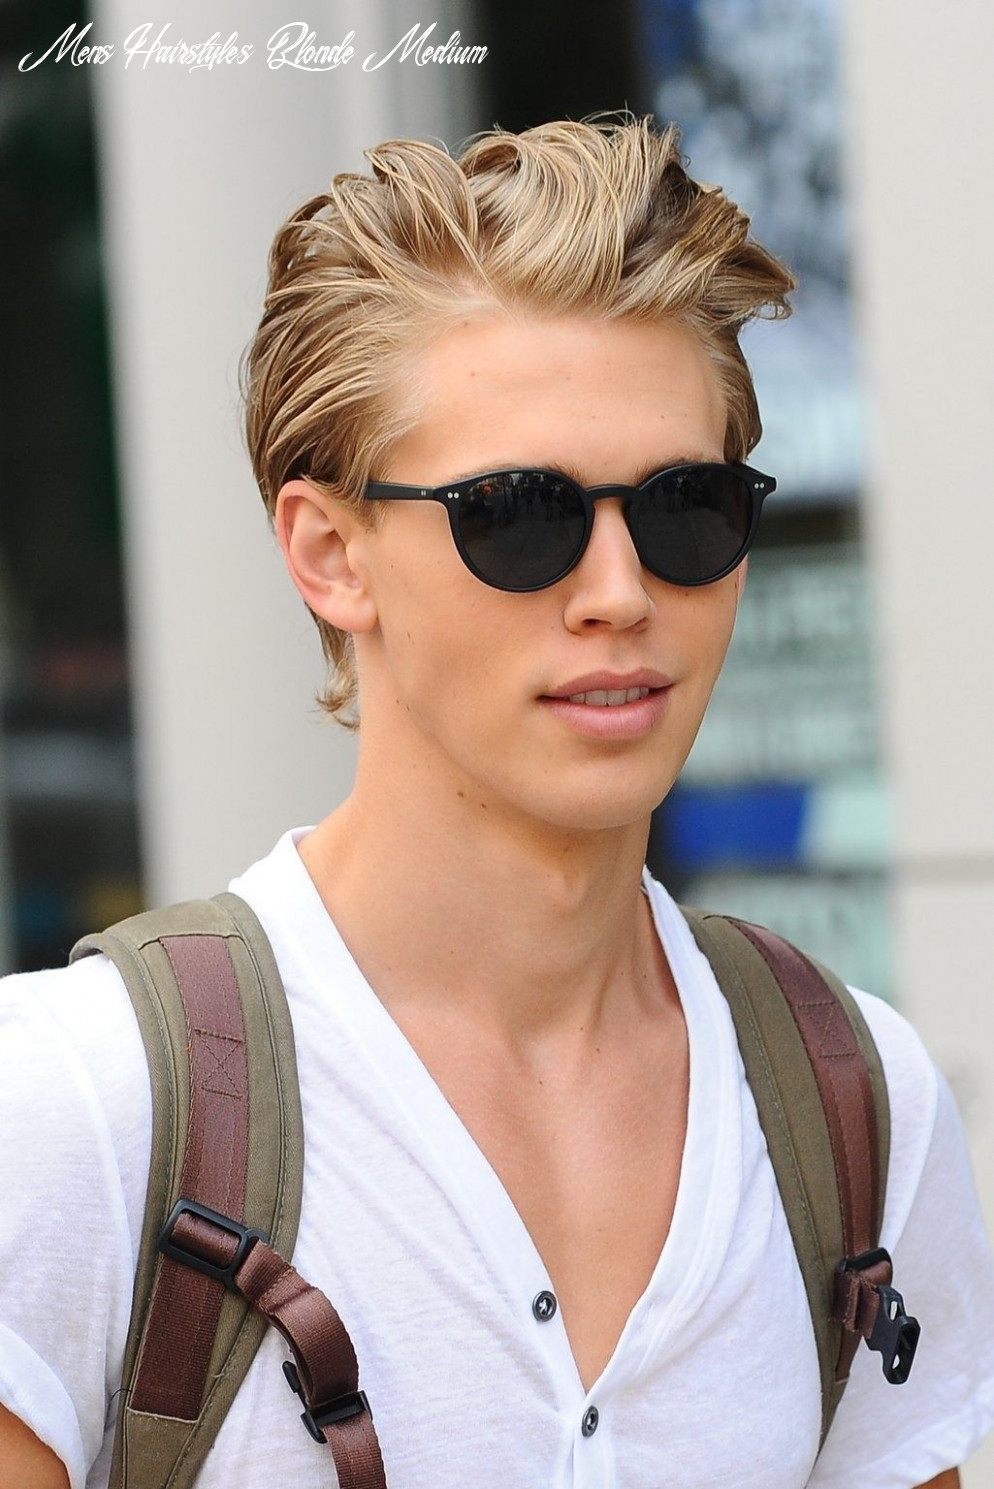 10 blonde hairstyles for men that every modern men will love to